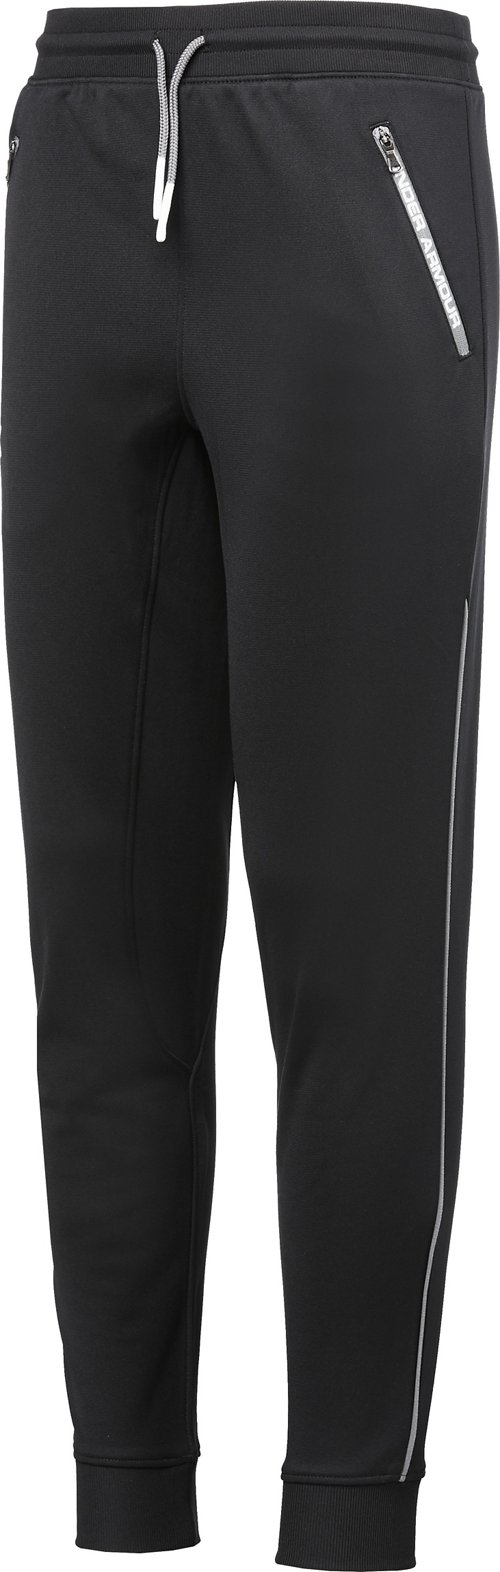 Under Armour Boys' Pennant Tapered Pants by Under Armour